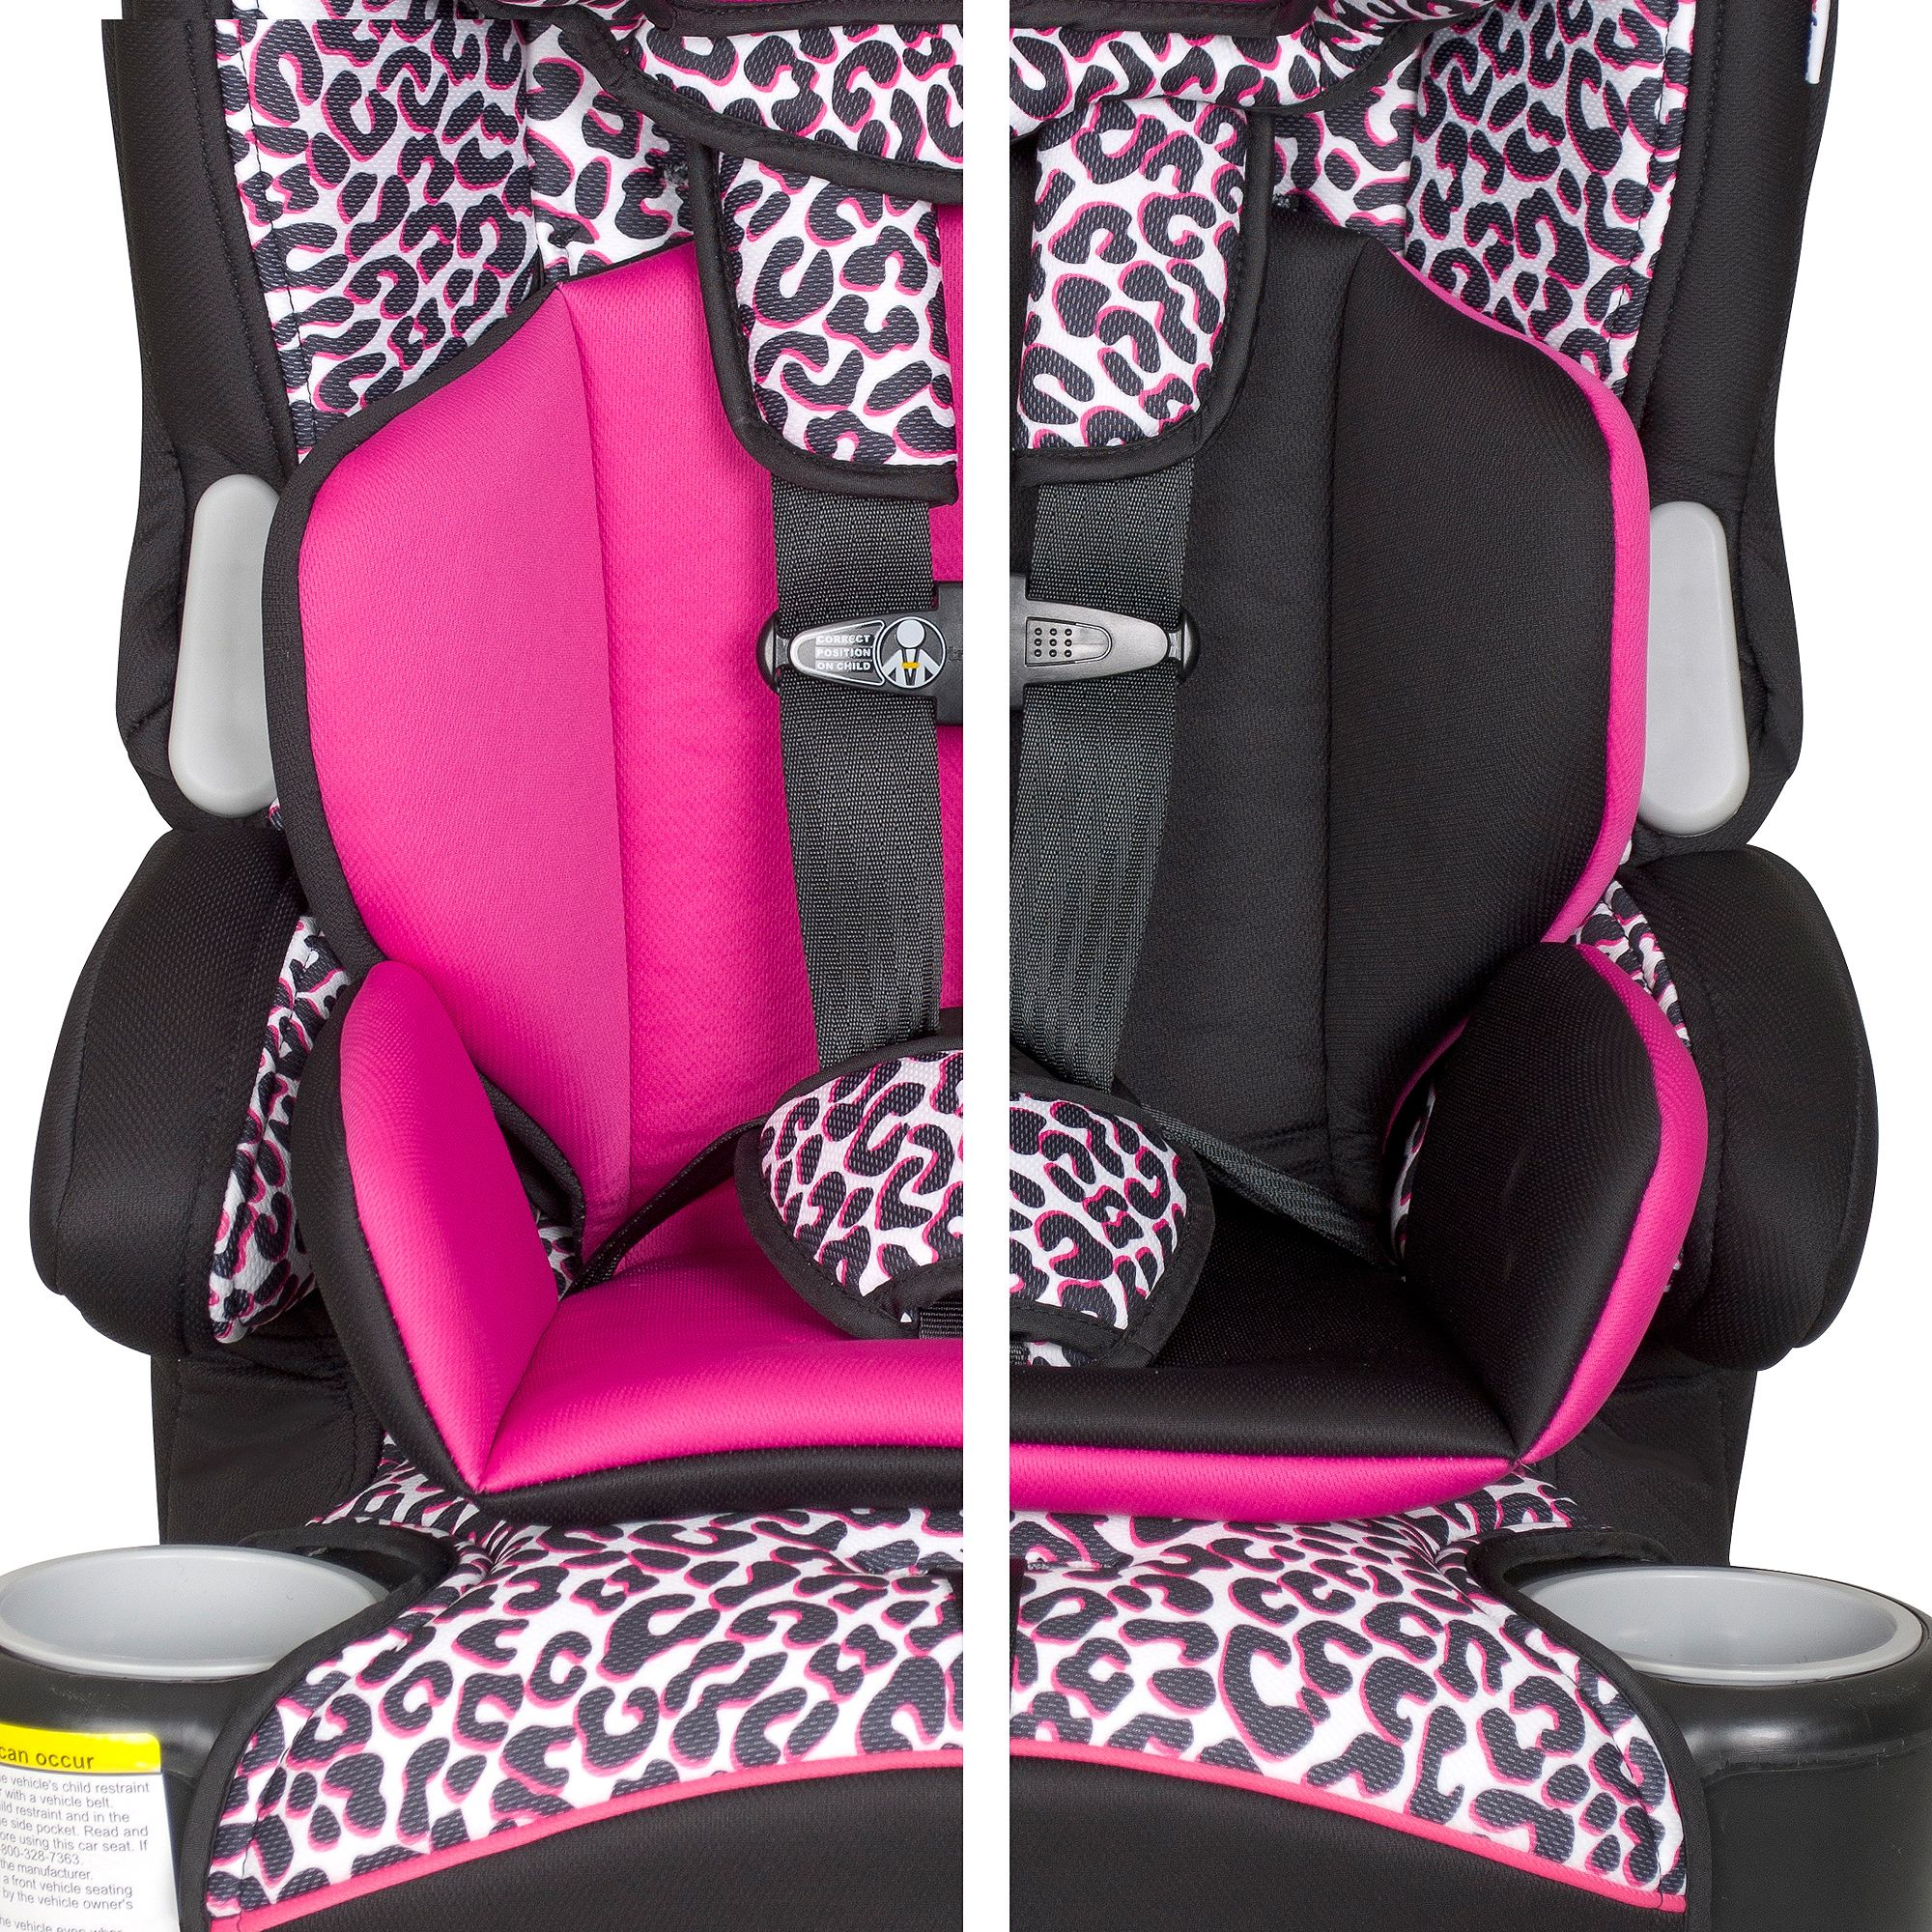 Baby Trend Hybrid LX 3 In 1 Harness Booster Car Seat Capri Breeze